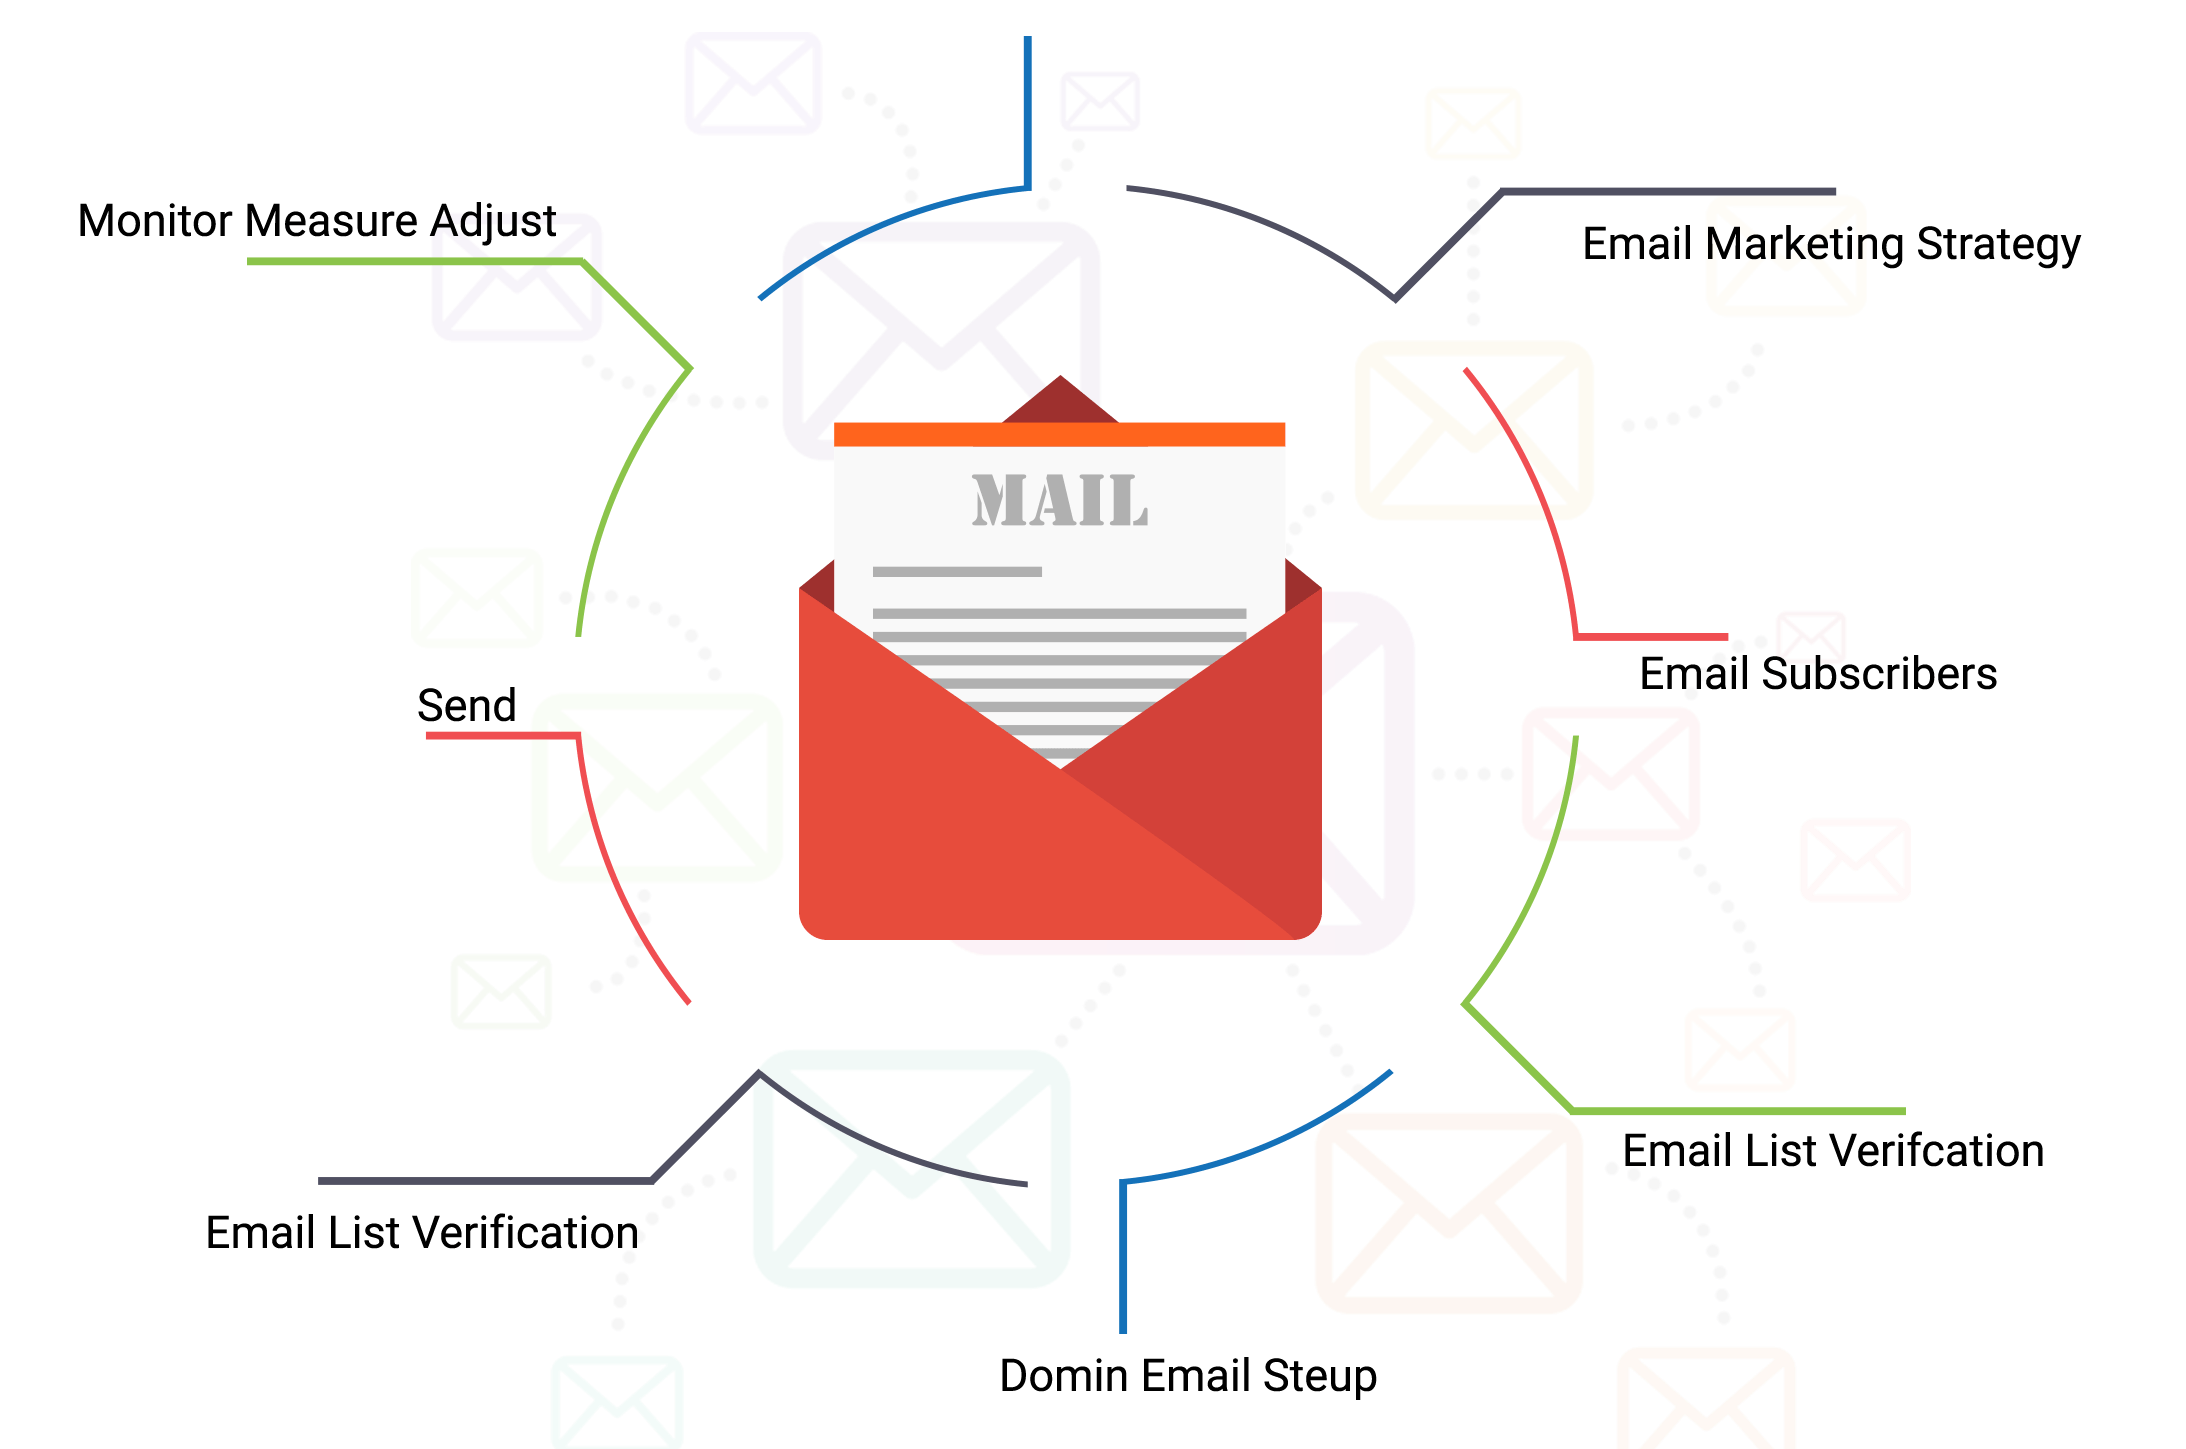 email-marketing-send-bulk-emails-campaign-uae